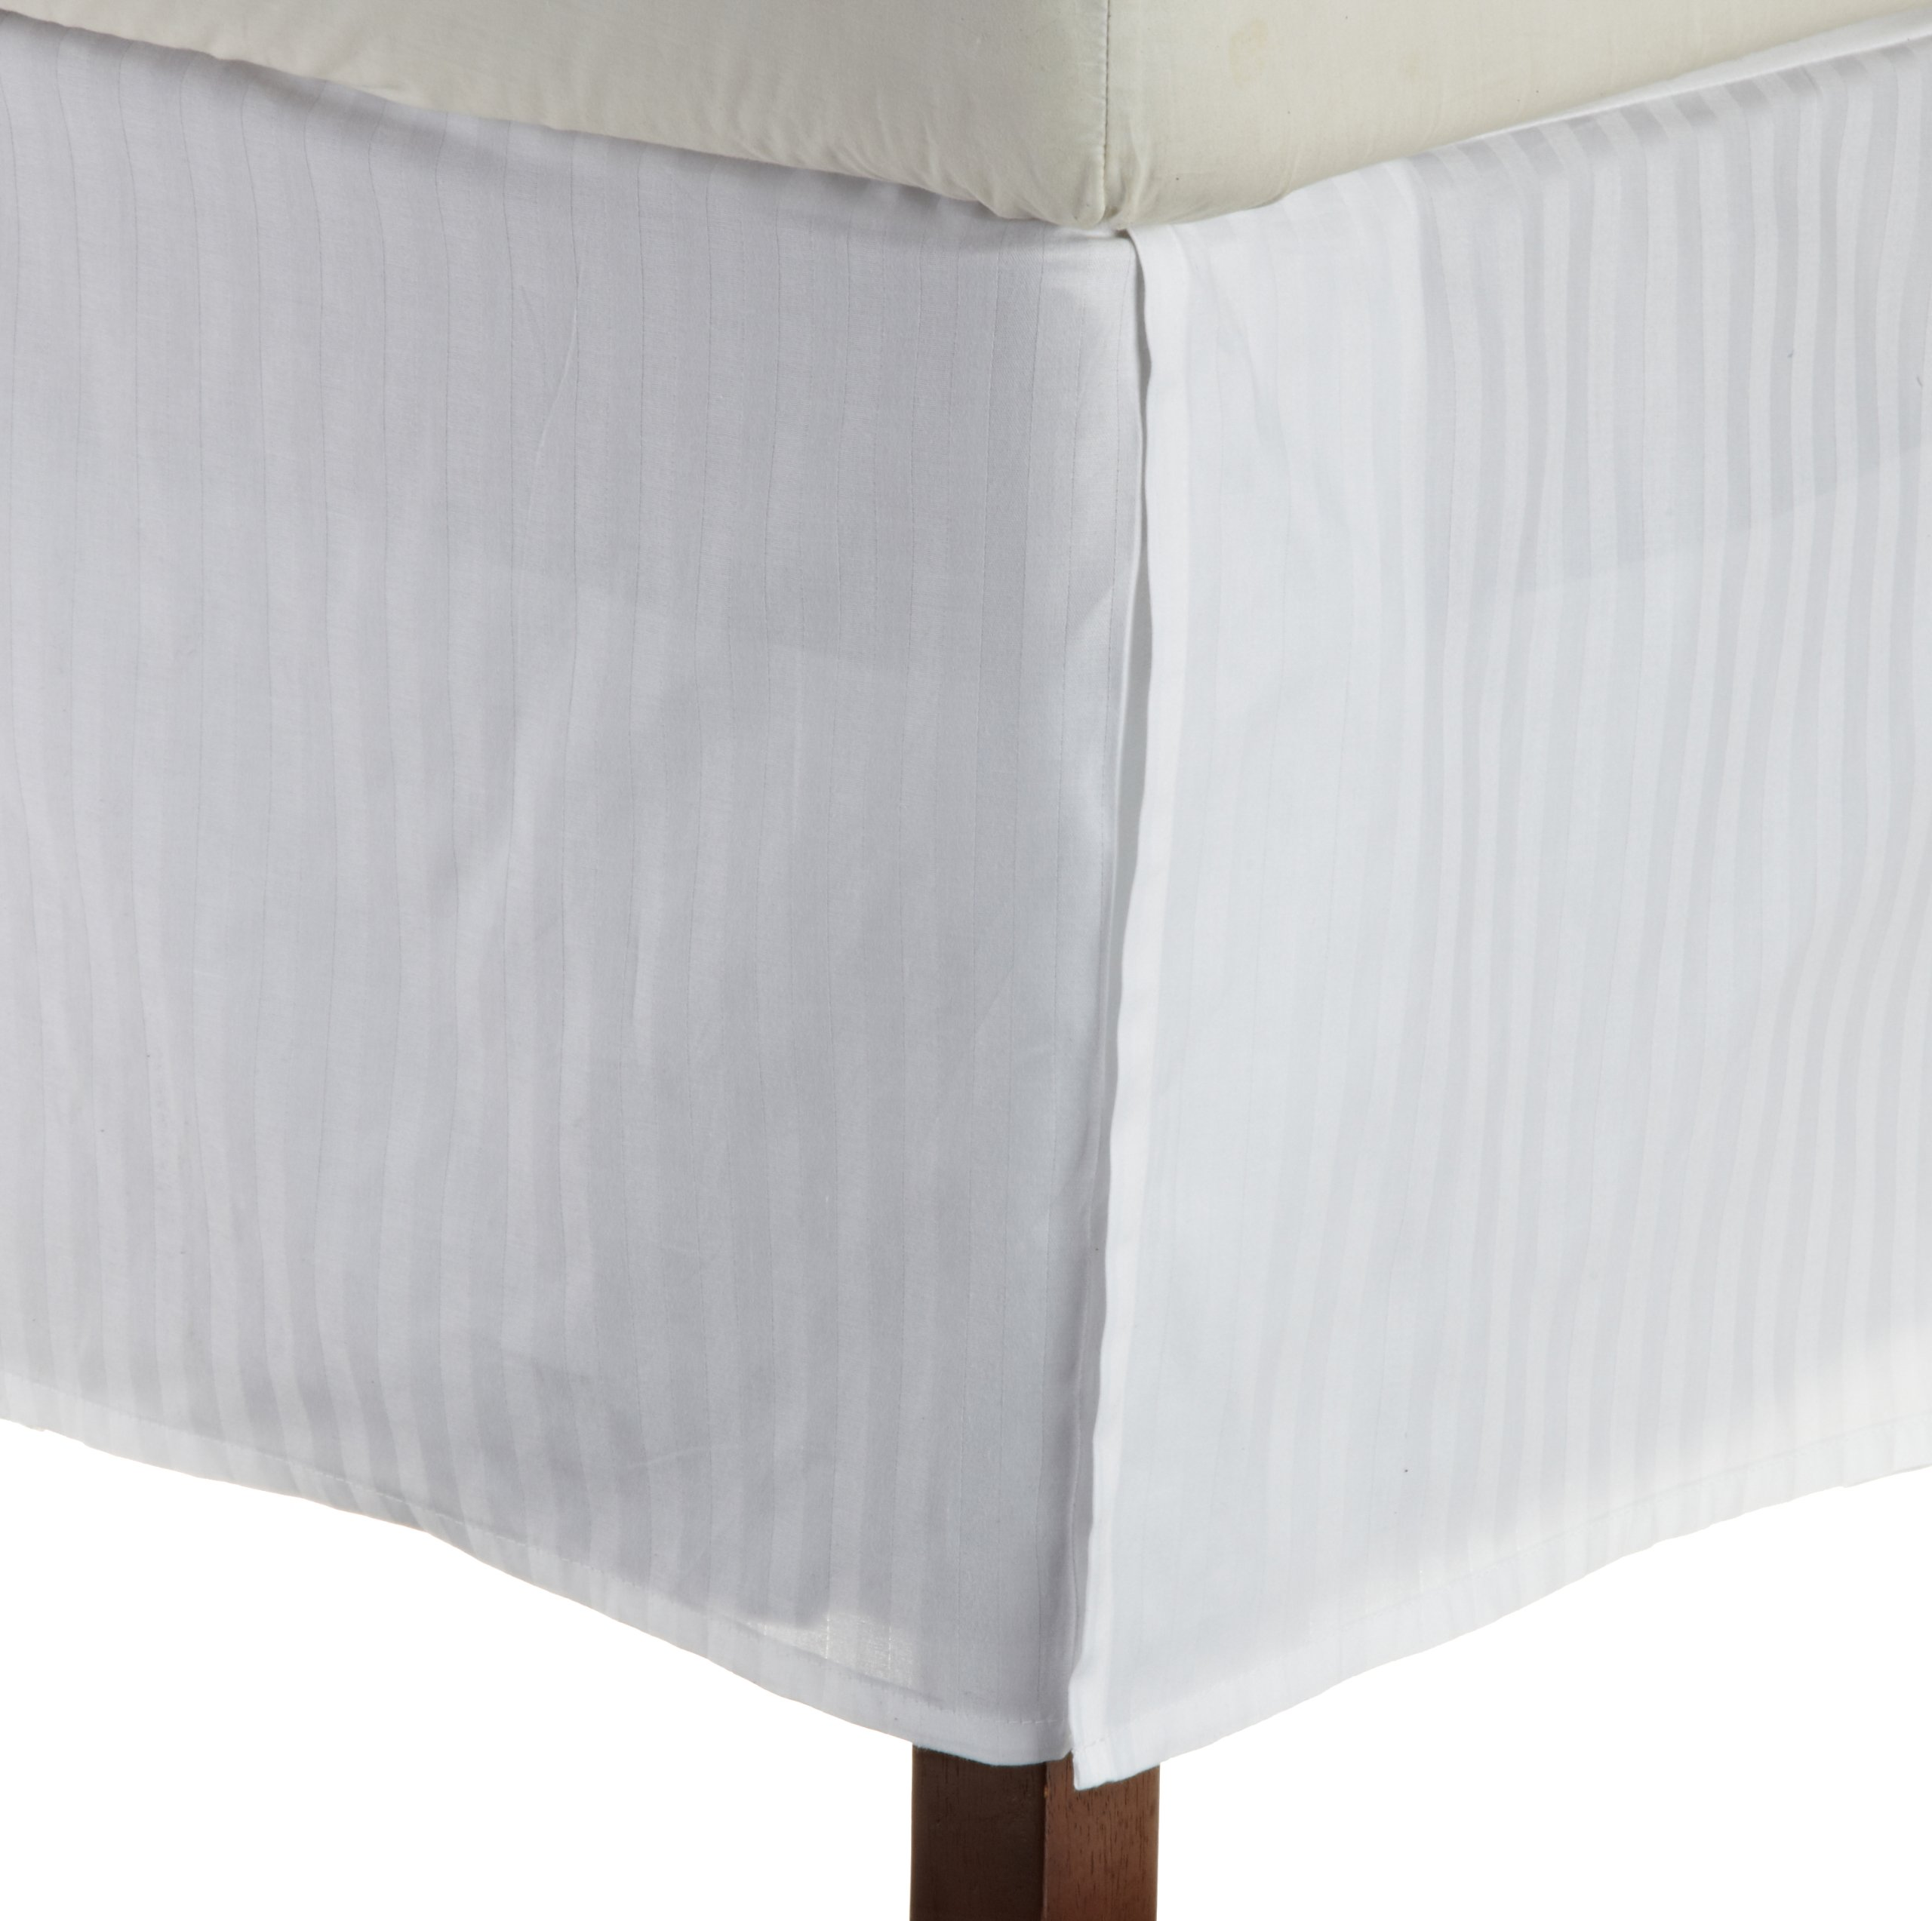 Superior 1500 Series 100% Microfiber Pleated King Bed Skirt Stripe, White - 15 Inch Drop and Wrinkle Resistant